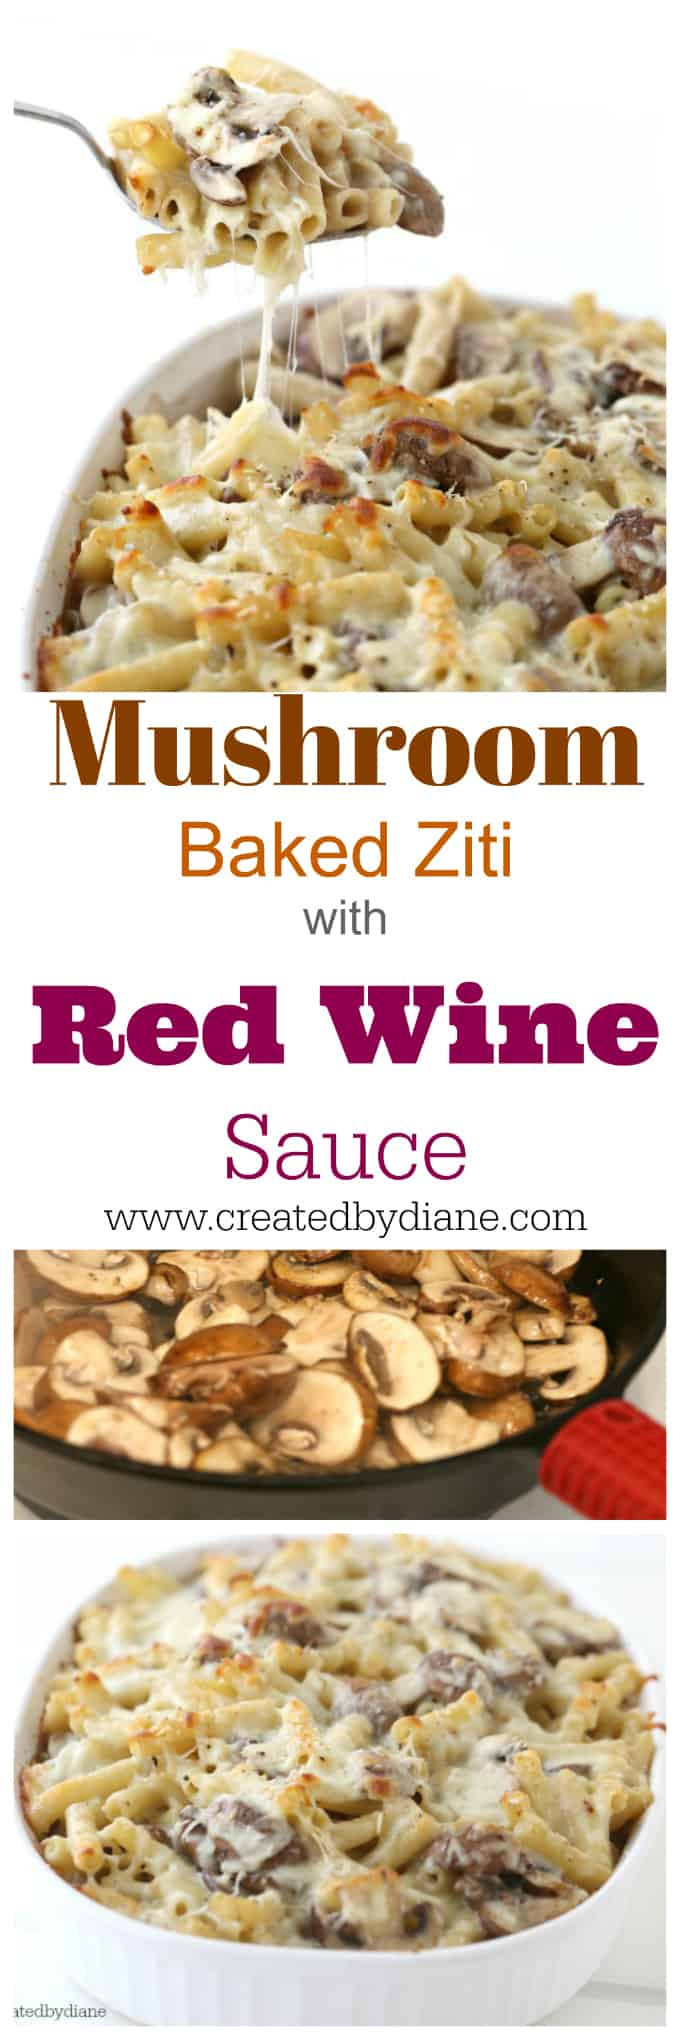 mushroom baked ziti with RED WINE SAUCE so flavorful and cheesy it's the perfect meal www.createdbydiane